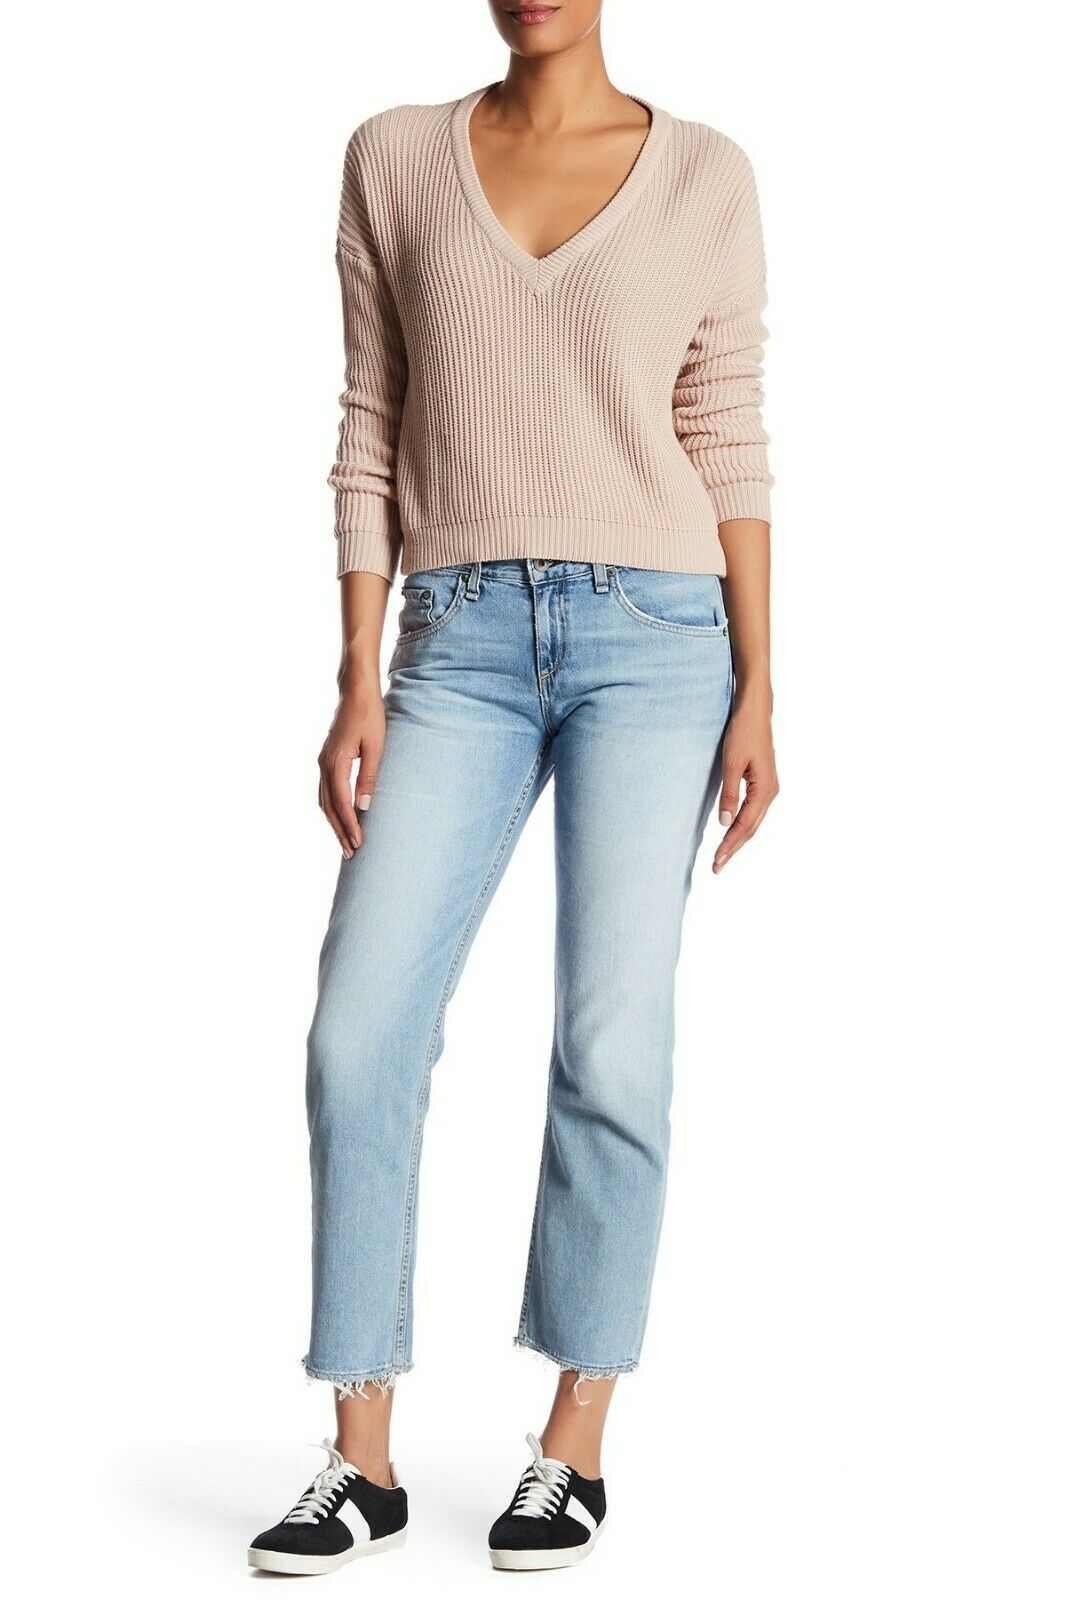 250 Rag & Bone JEAN X Boyfriend Relaxed Fit Jeans with Raw Hem in Chaucer - 29